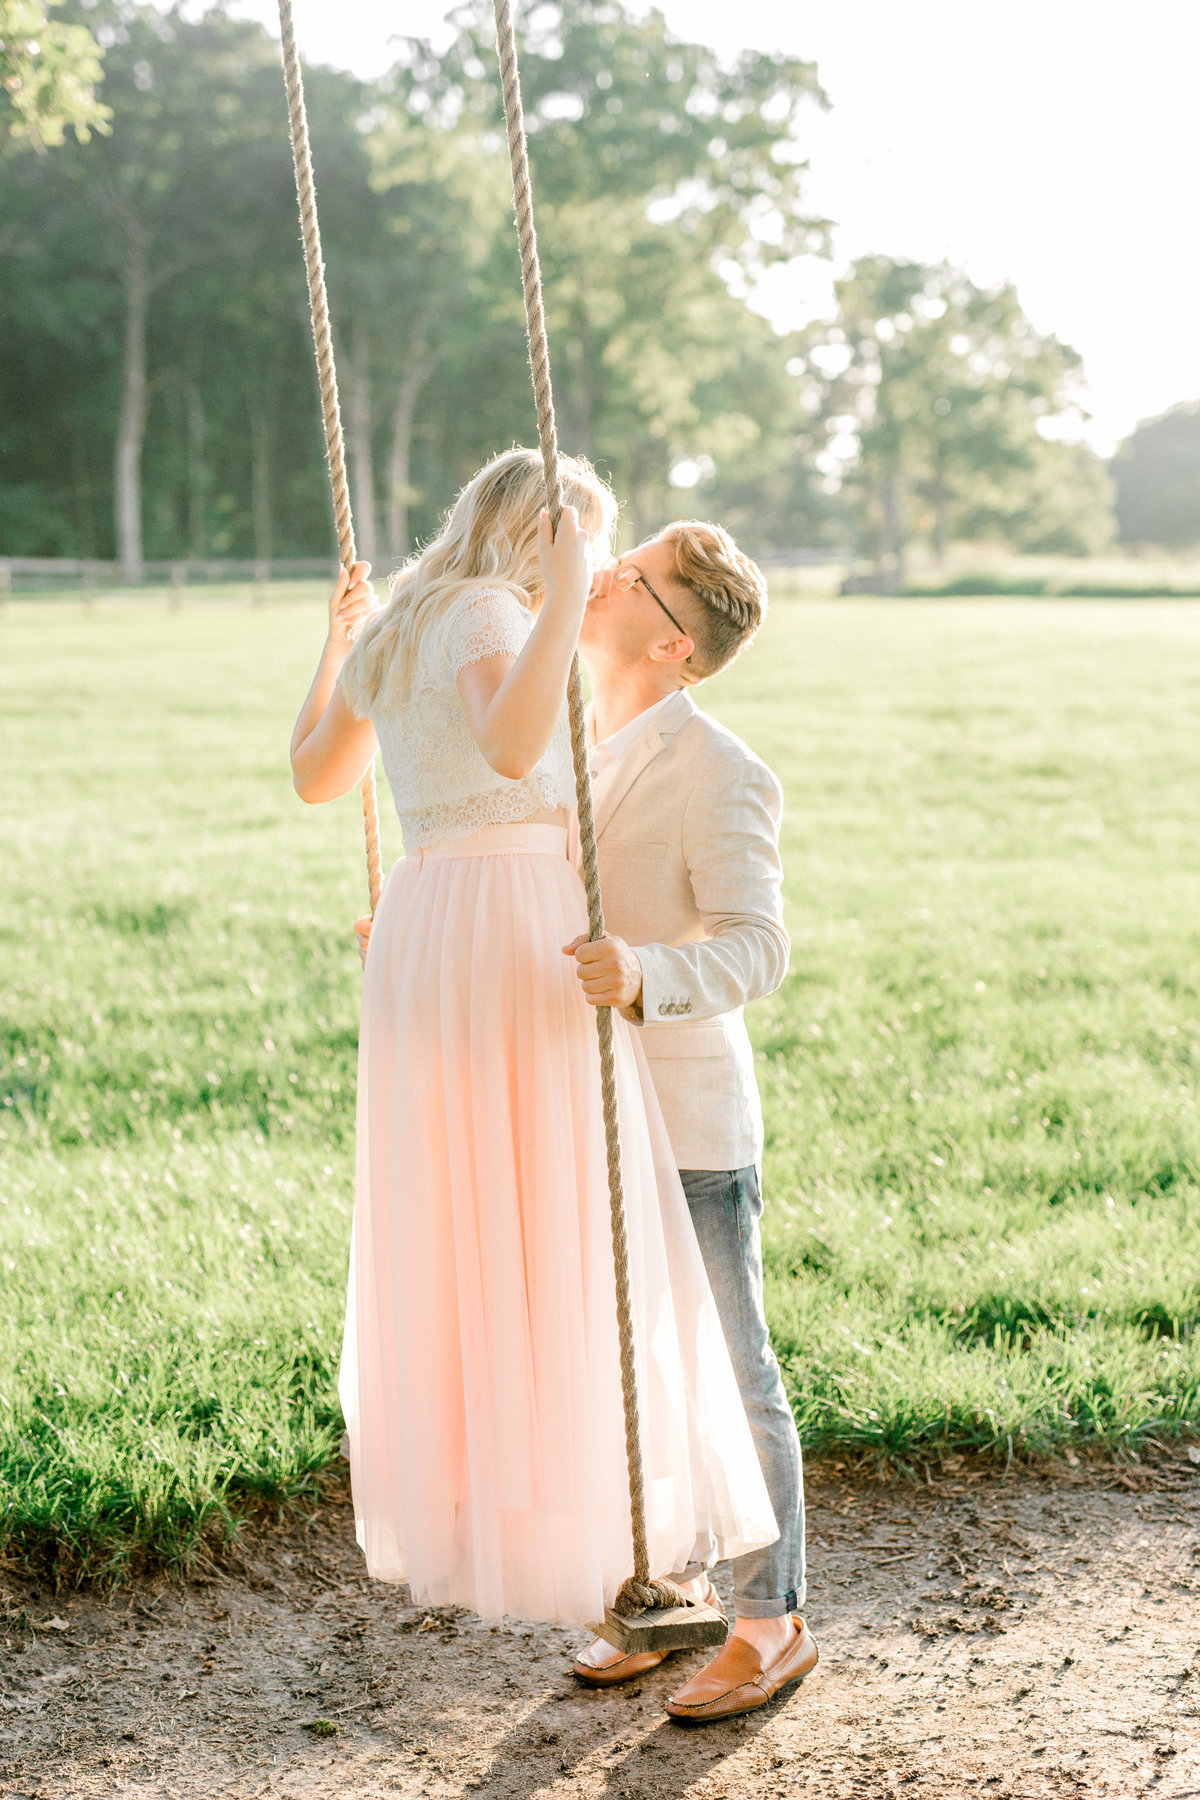 Mayowood Stone Barn Wedding  Photographer Engagement Session on Swing